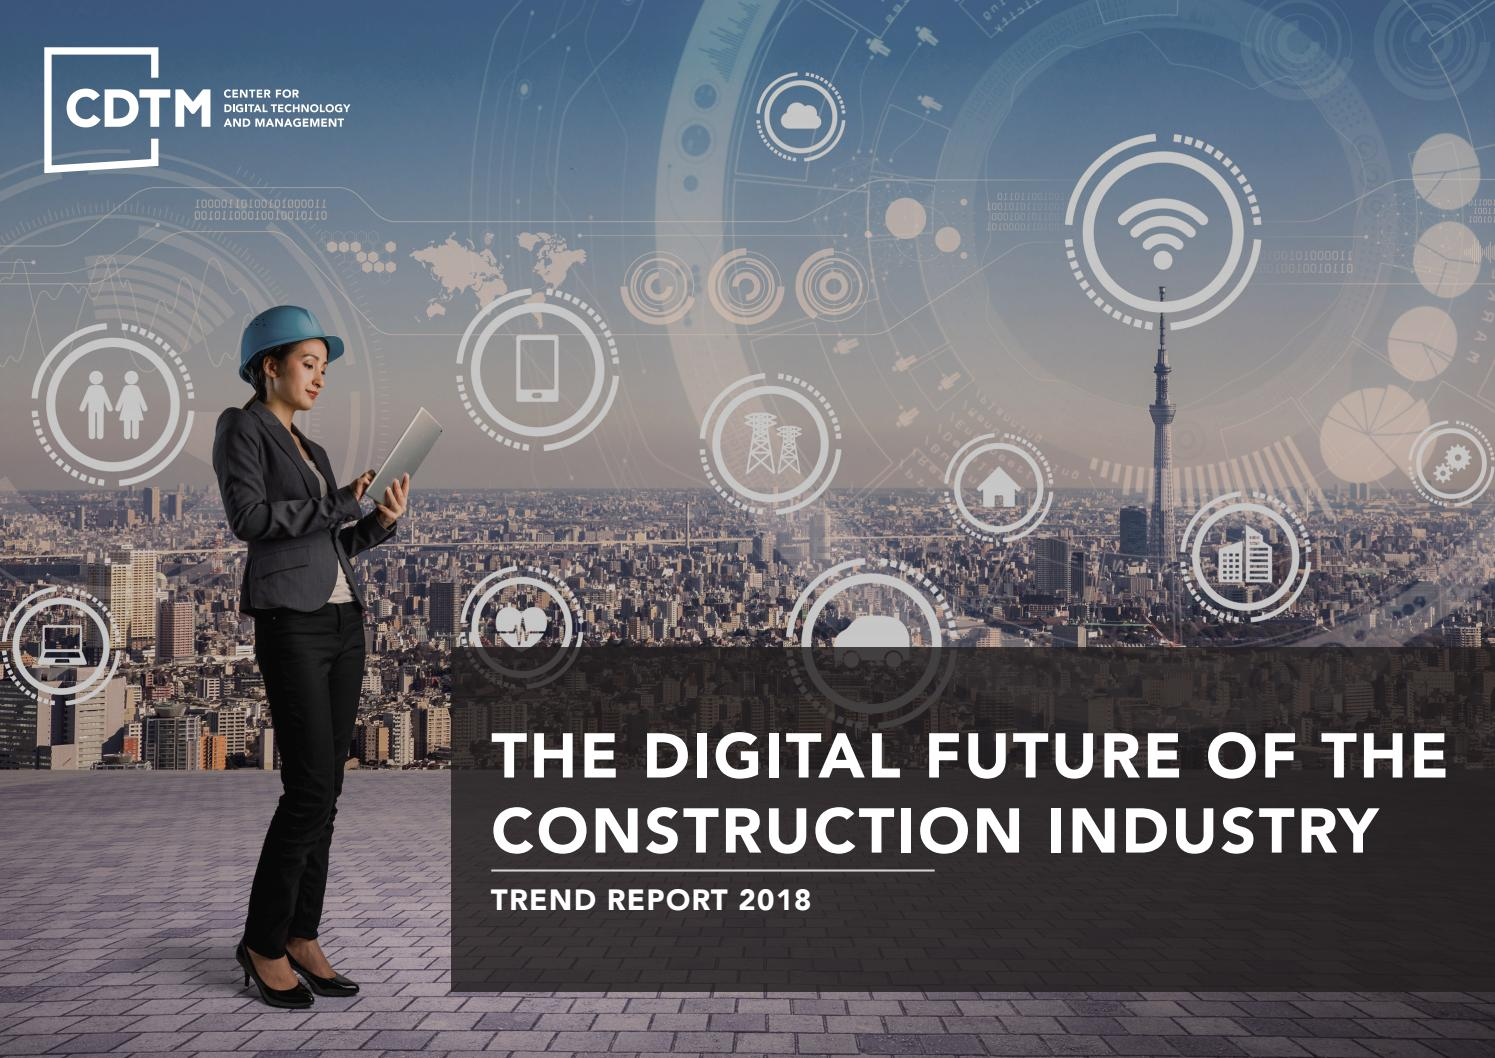 Cdtm Trend Seminar The Digital Future Of The Construction Industry By Center For Digital Technology And Management Issuu